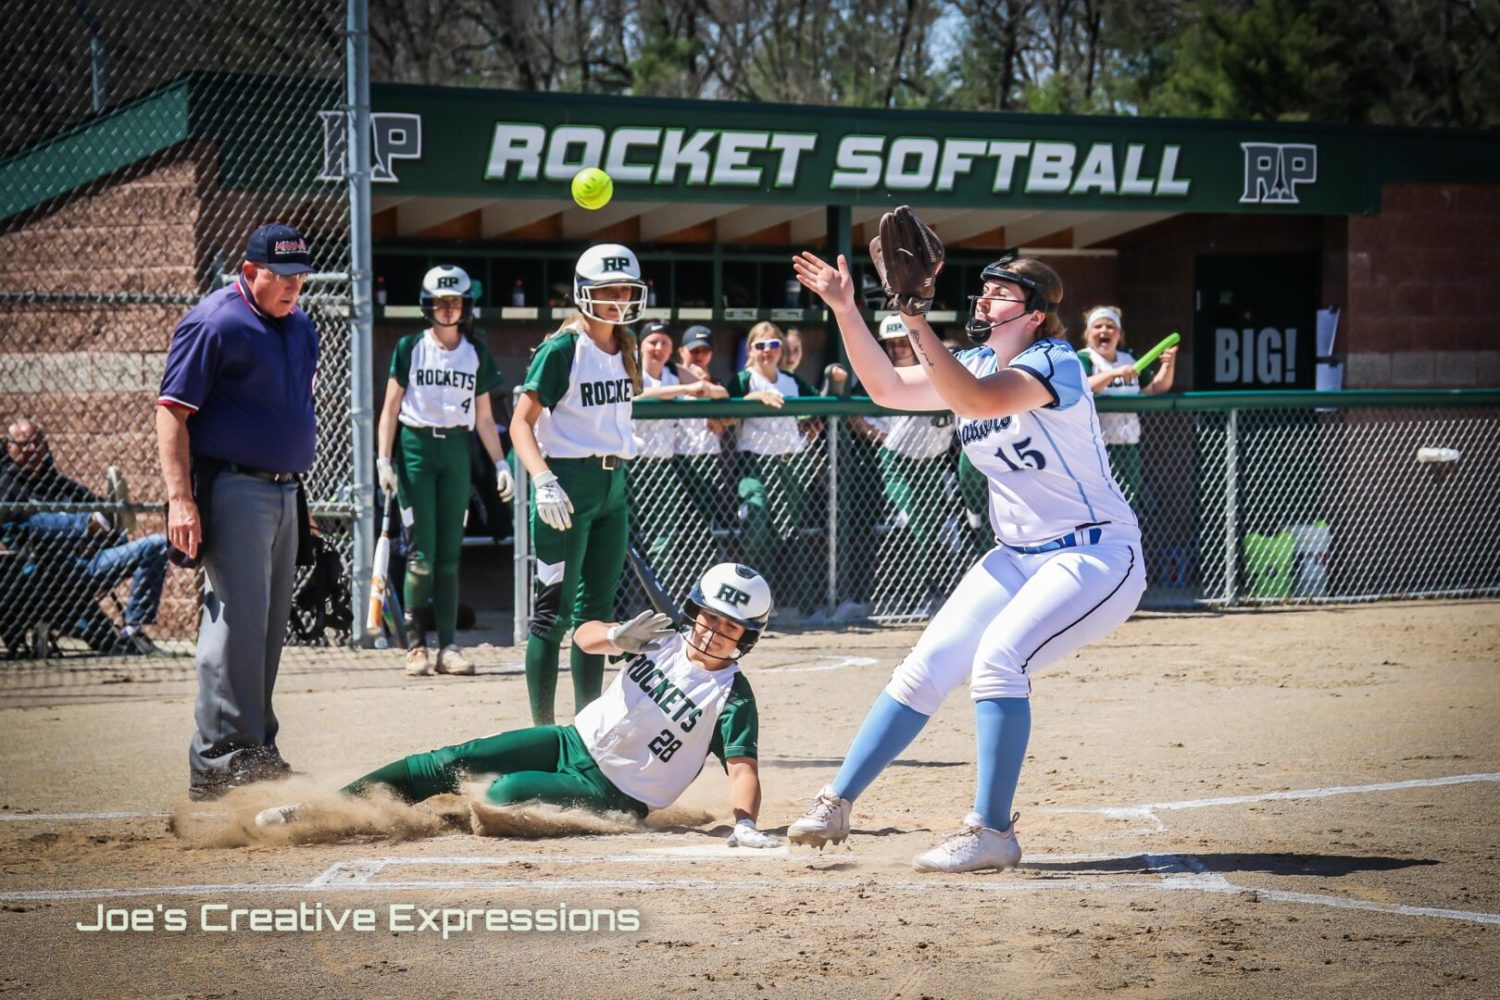 Unhospitable hosts: Rockets continue to hog the title in Tier 1 city softball tournament